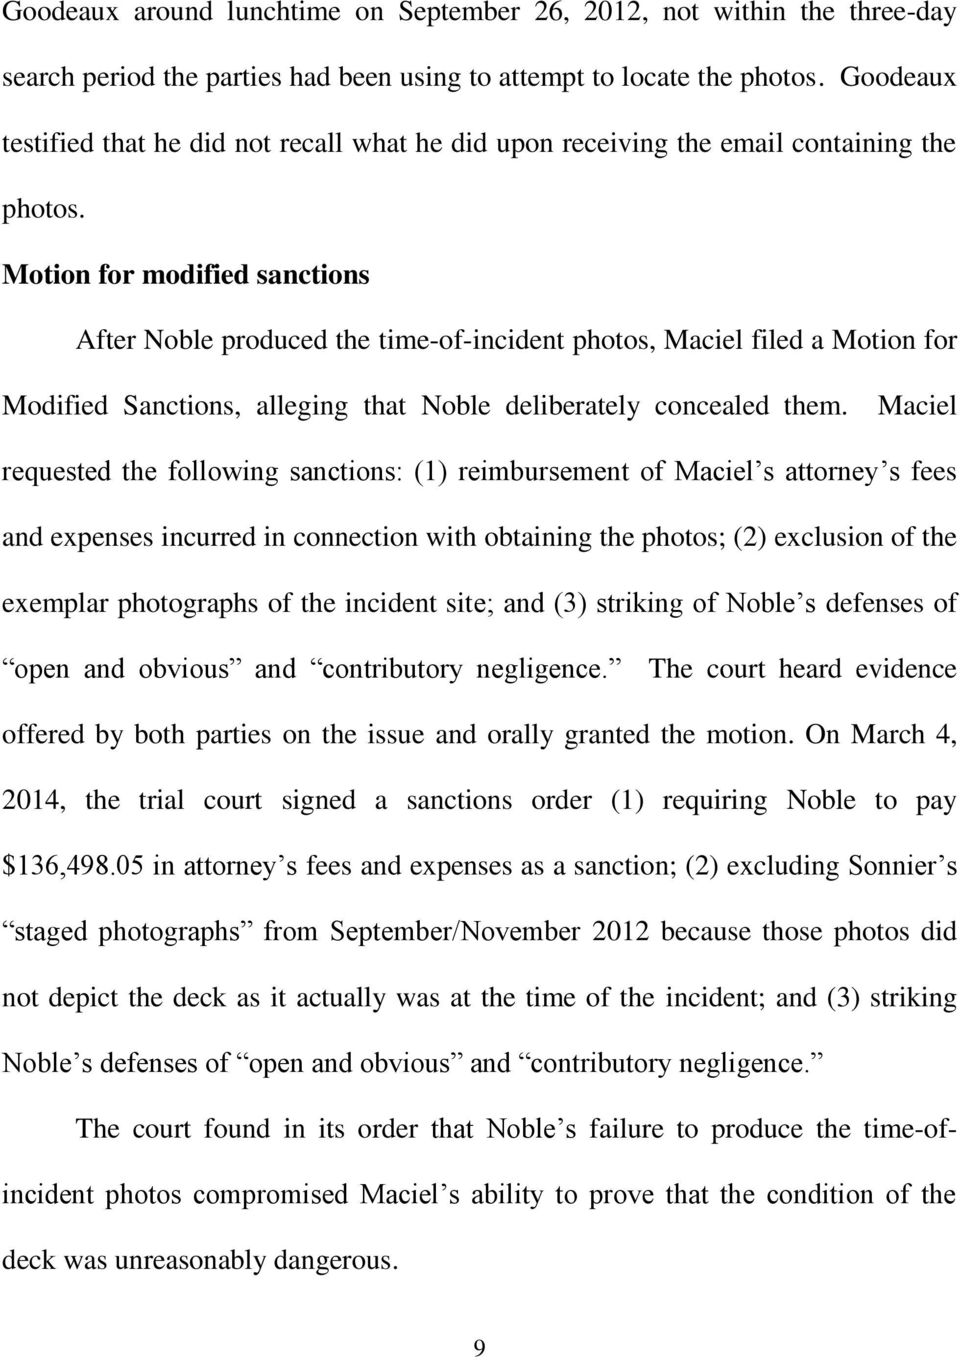 Motion for modified sanctions After Noble produced the time-of-incident photos, Maciel filed a Motion for Modified Sanctions, alleging that Noble deliberately concealed them.